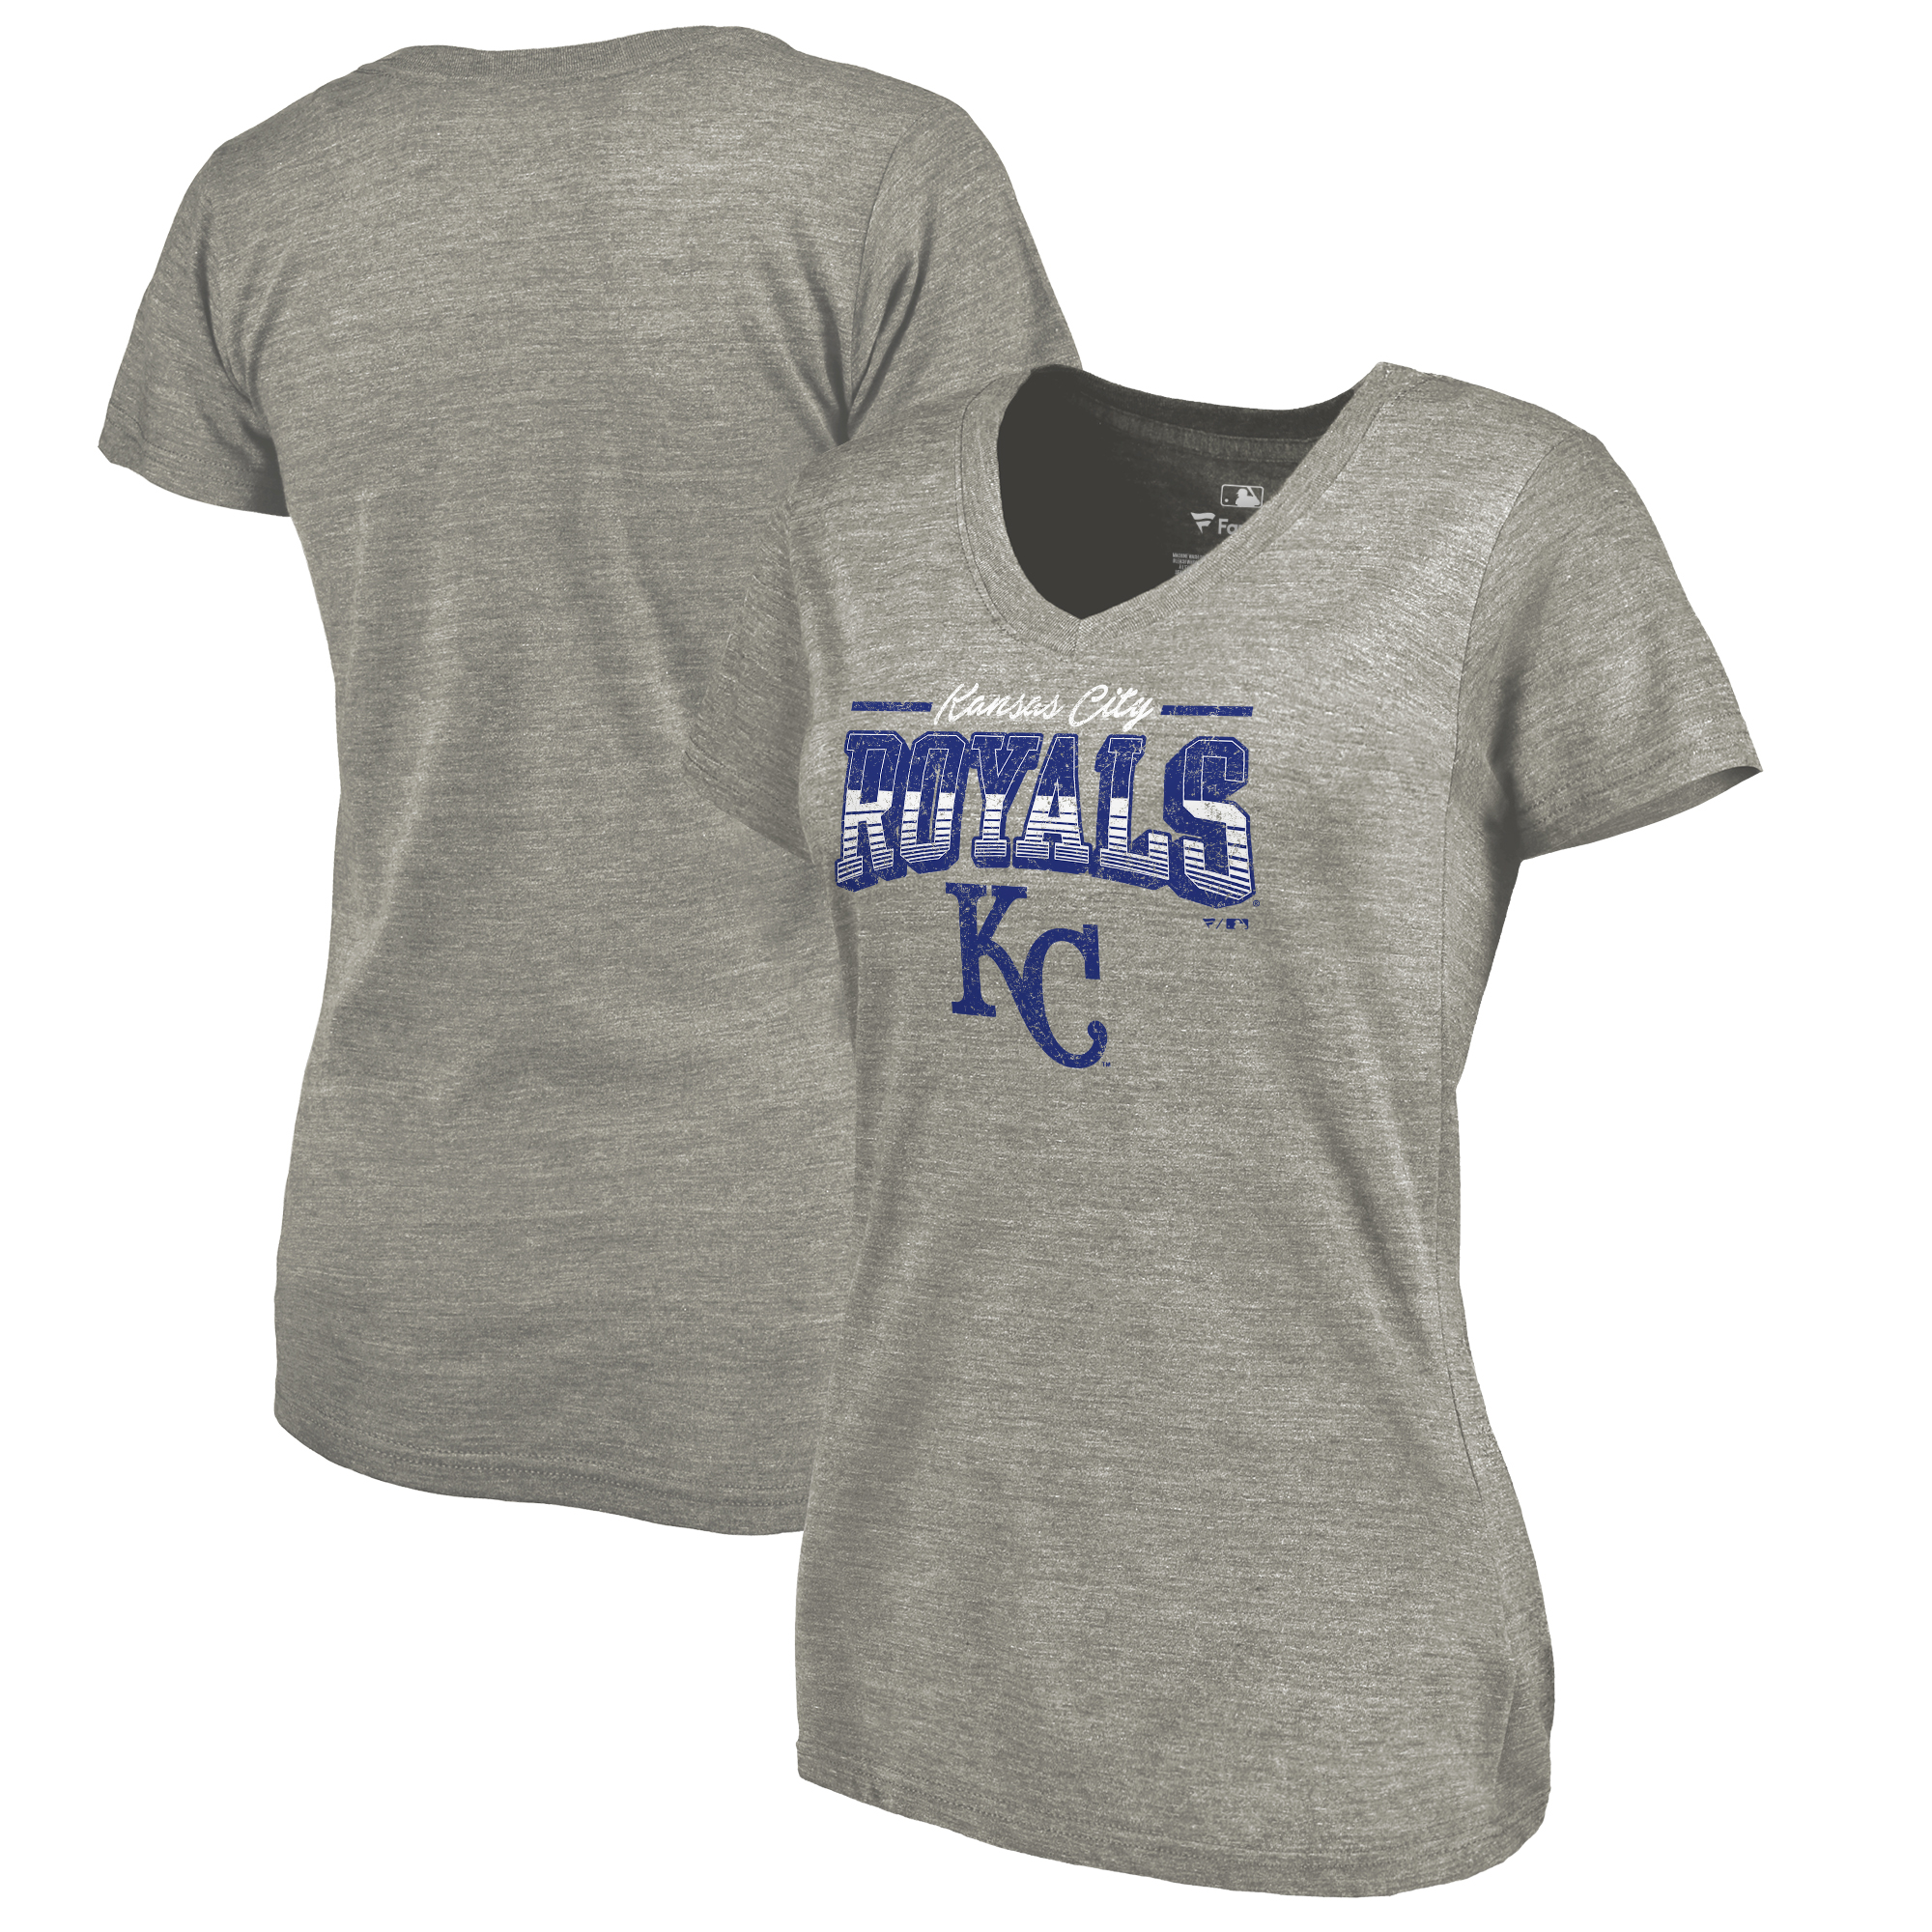 Kansas City Royals Fanatics Branded Women's Cooperstown Collection Season Ticket Tri-Blend V-Neck T-Shirt - Heathered Gray